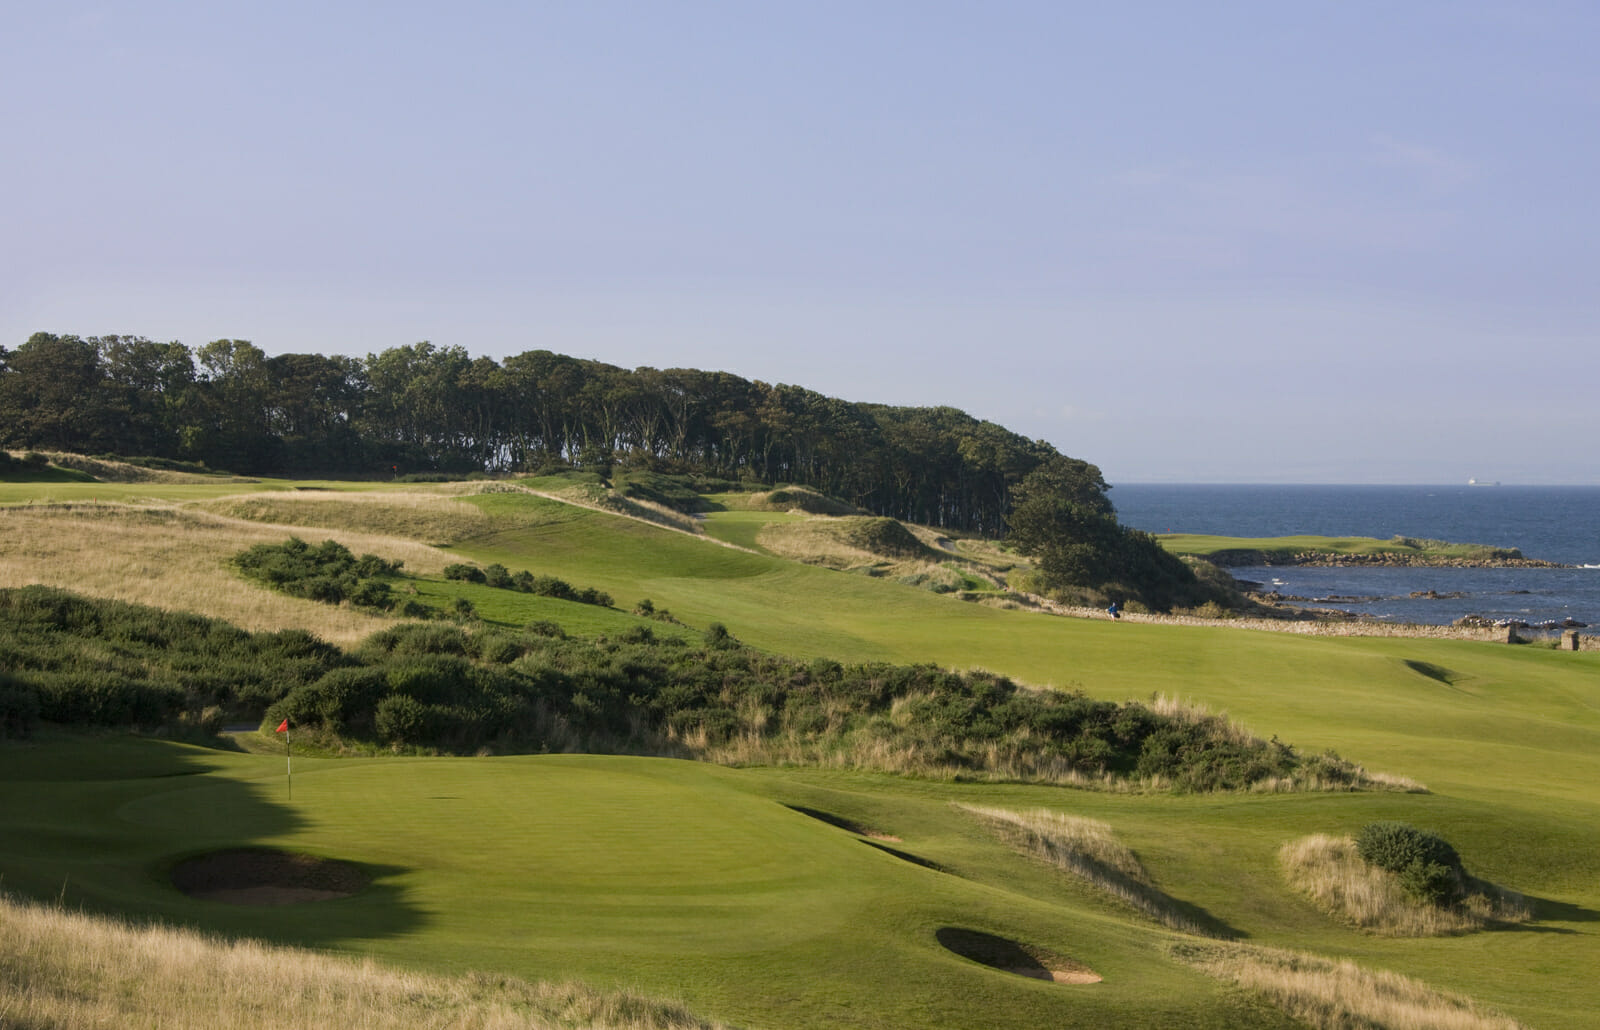 Overlooking the 13th, 14th & 15th holes at Kingsbarns Golf Links, Scotland, United Kingdom